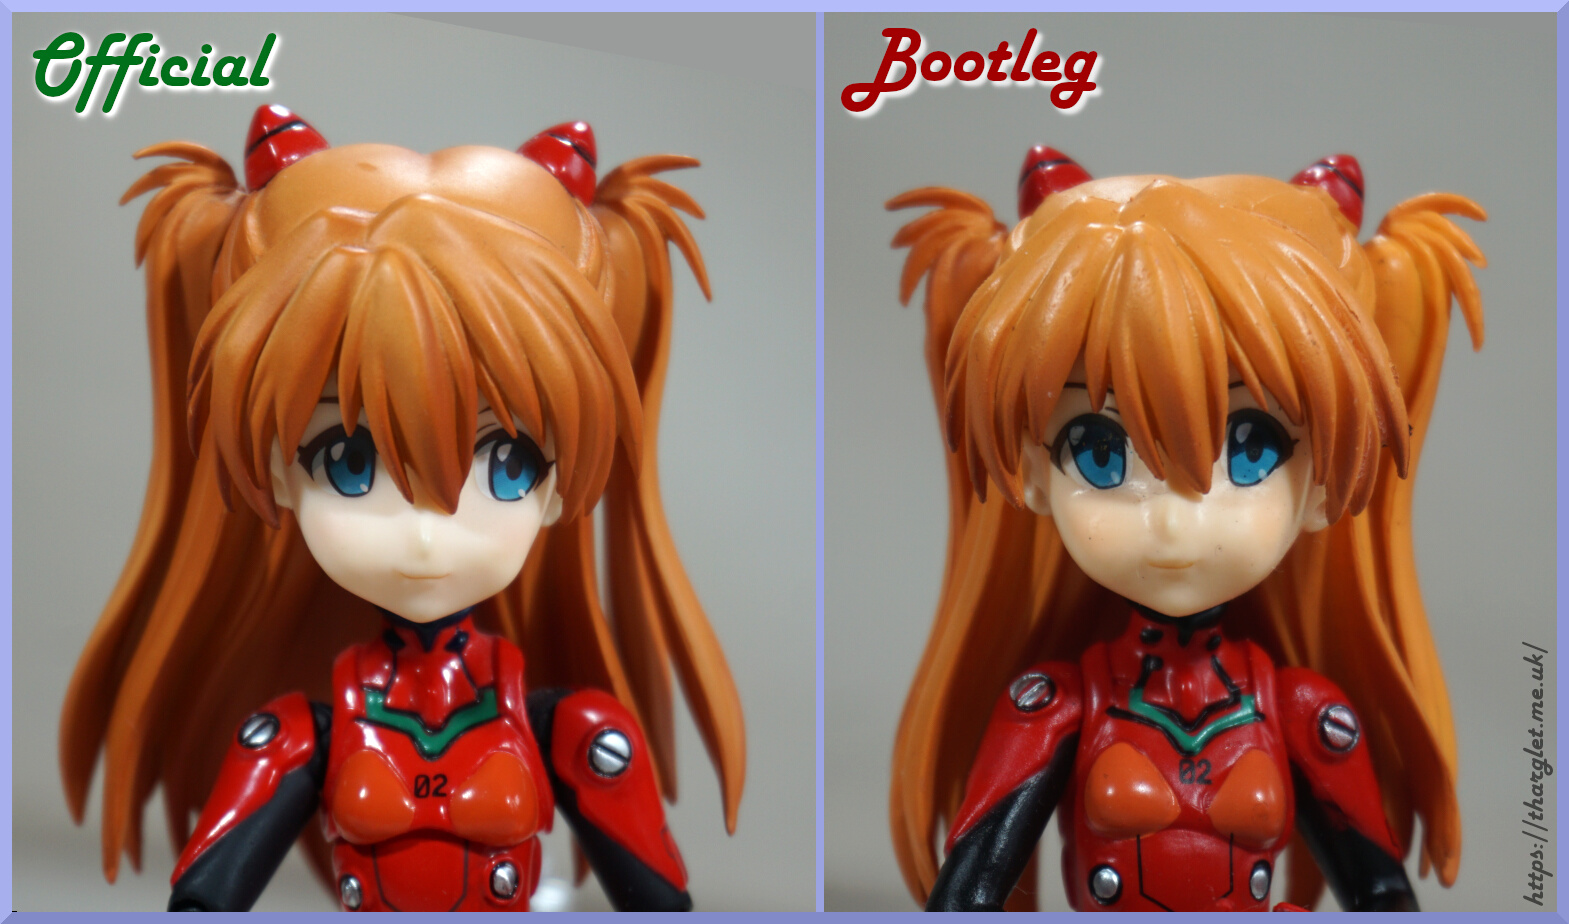 https://i.ibb.co/HYTCn2J/asuka-face.jpg